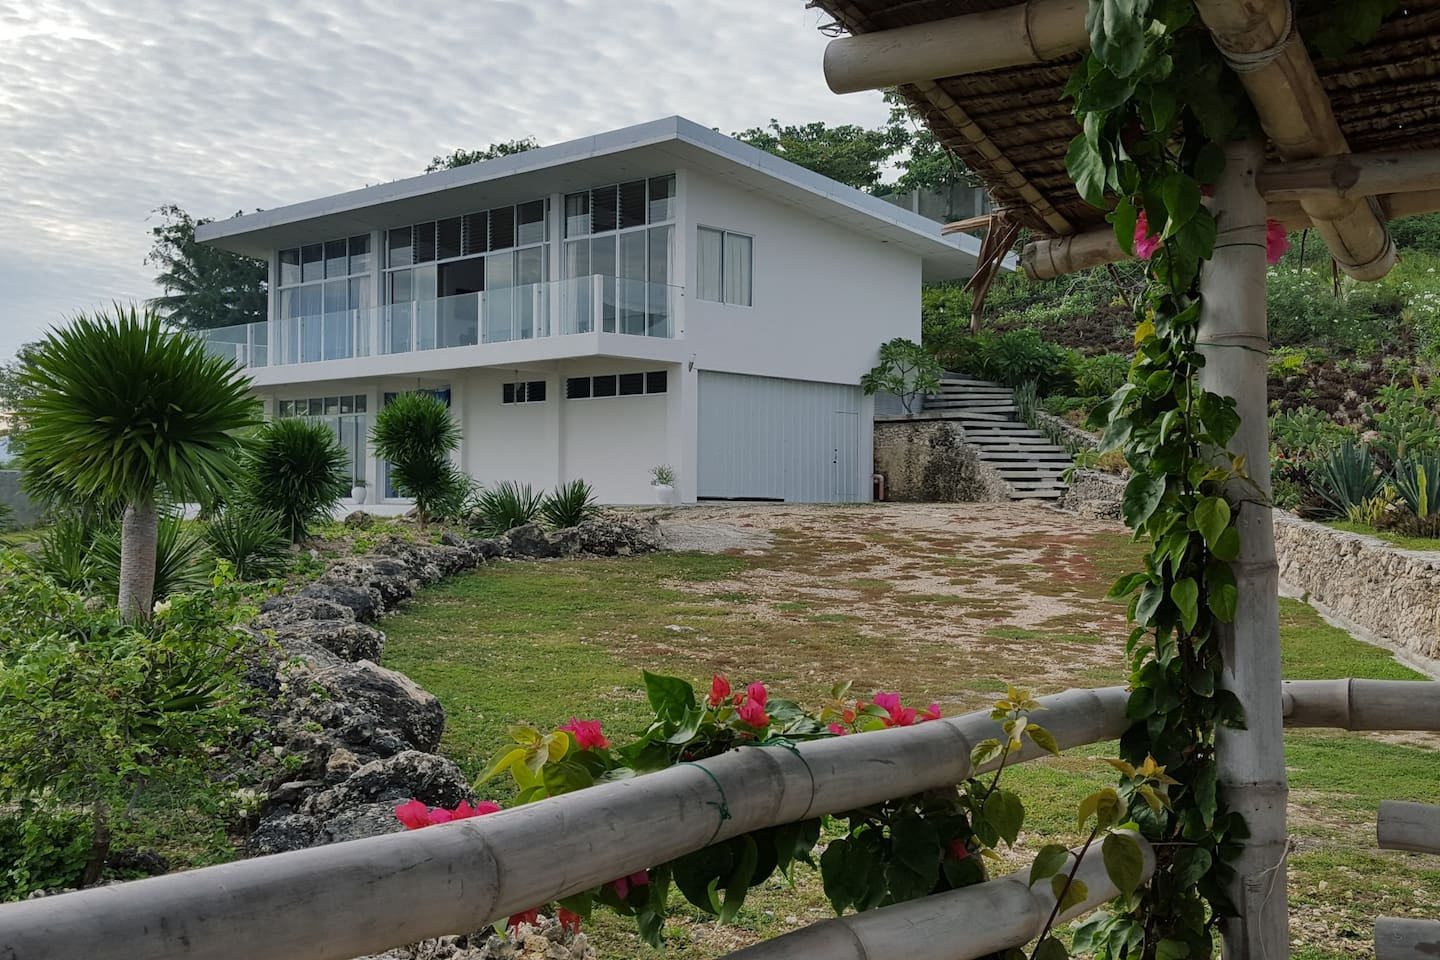 Crib for sale in olongapo - Seaside Cliff Top House Barili Houses For Rent In Barili Central Visayas Philippines